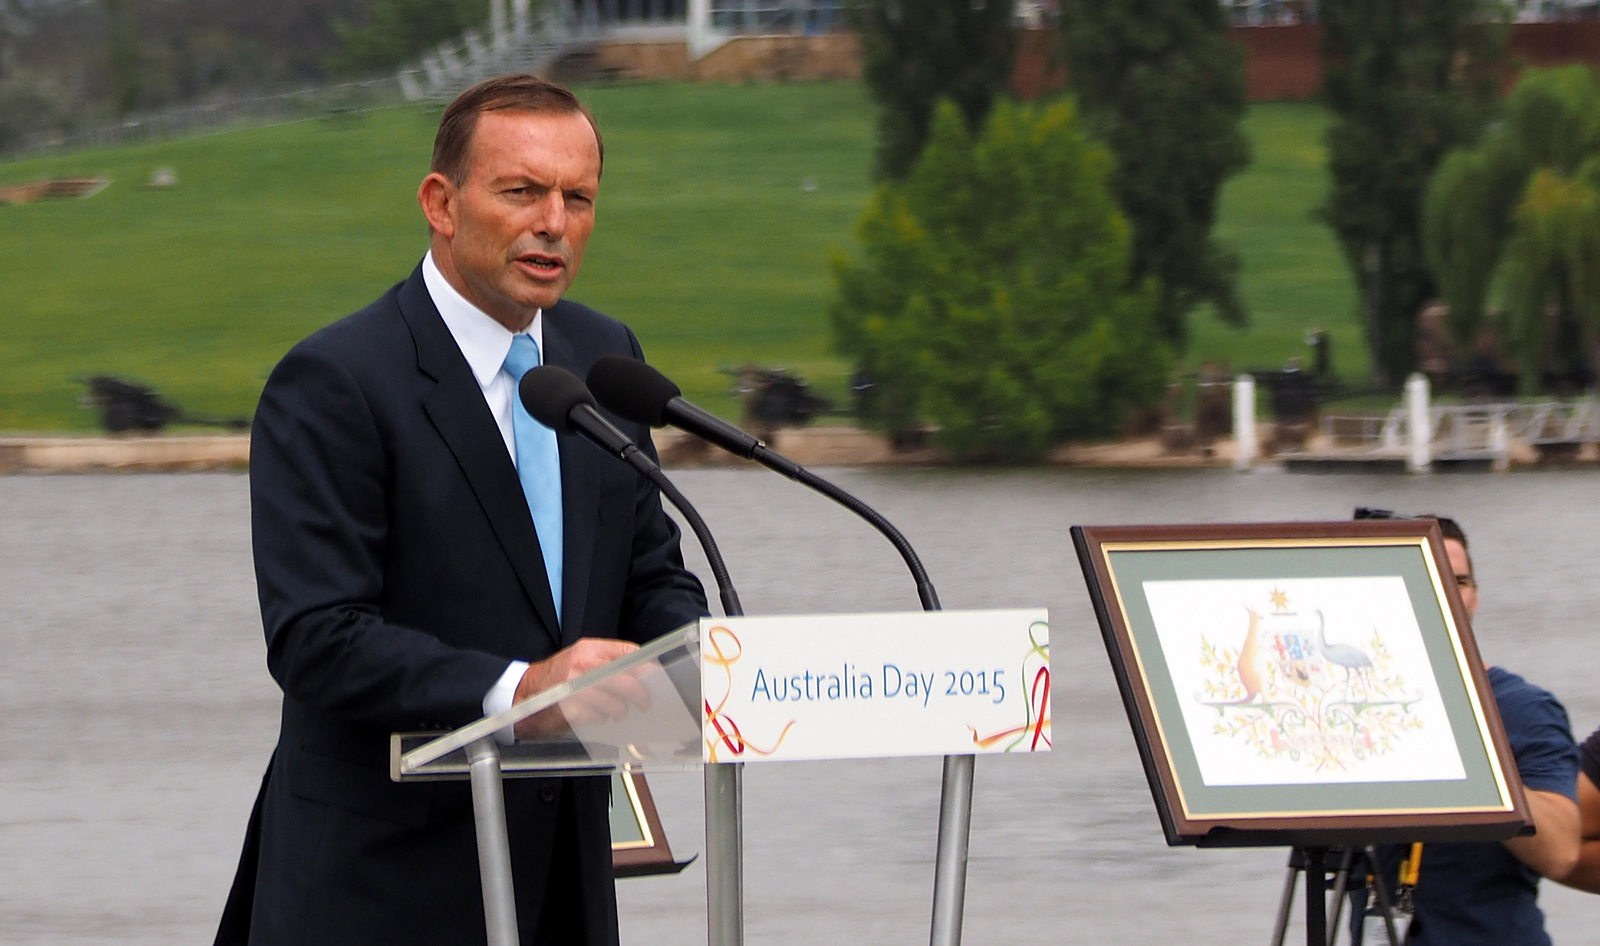 Tony Abbott speaking at the 2015 National Flag Raising and Citizenship Ceremony. Photo by Nick D: http://commons.wikimedia.org/wiki/User:Nick-D